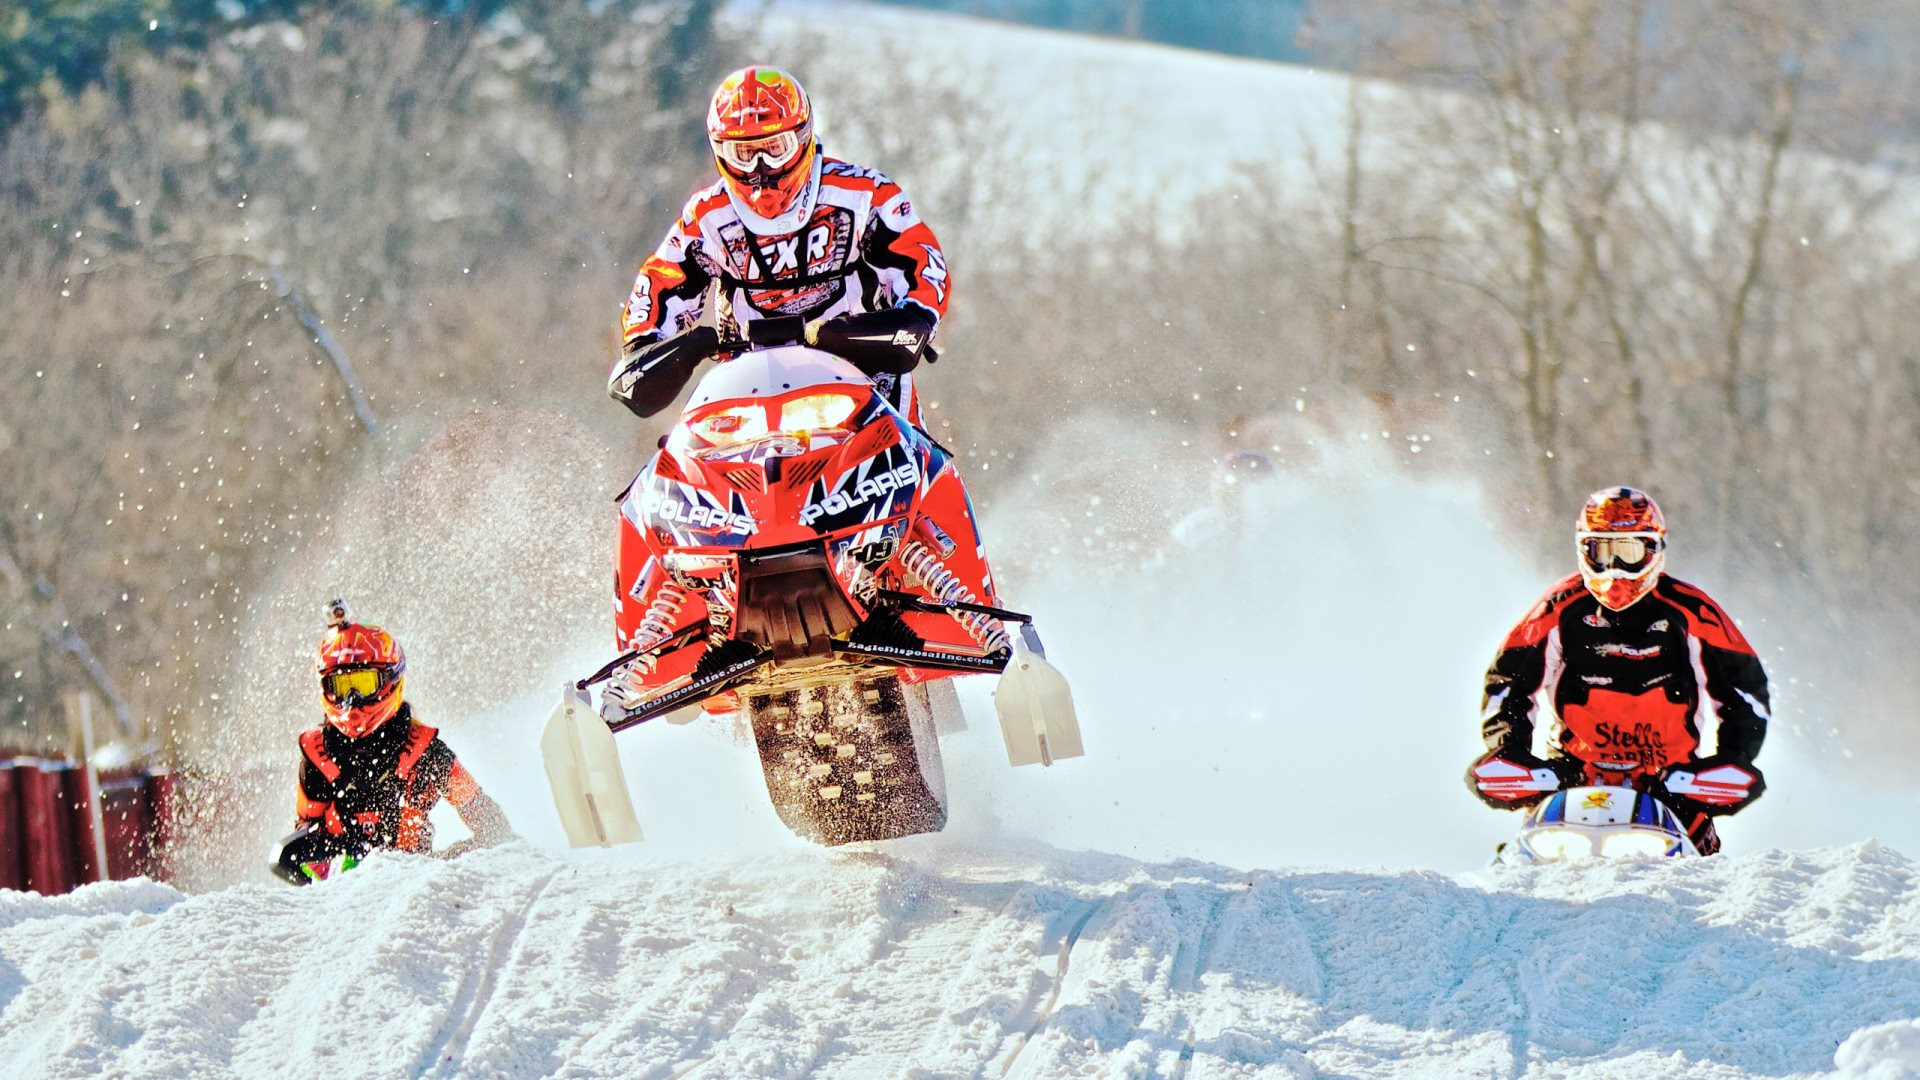 snowmobile contest wallpaper 53634